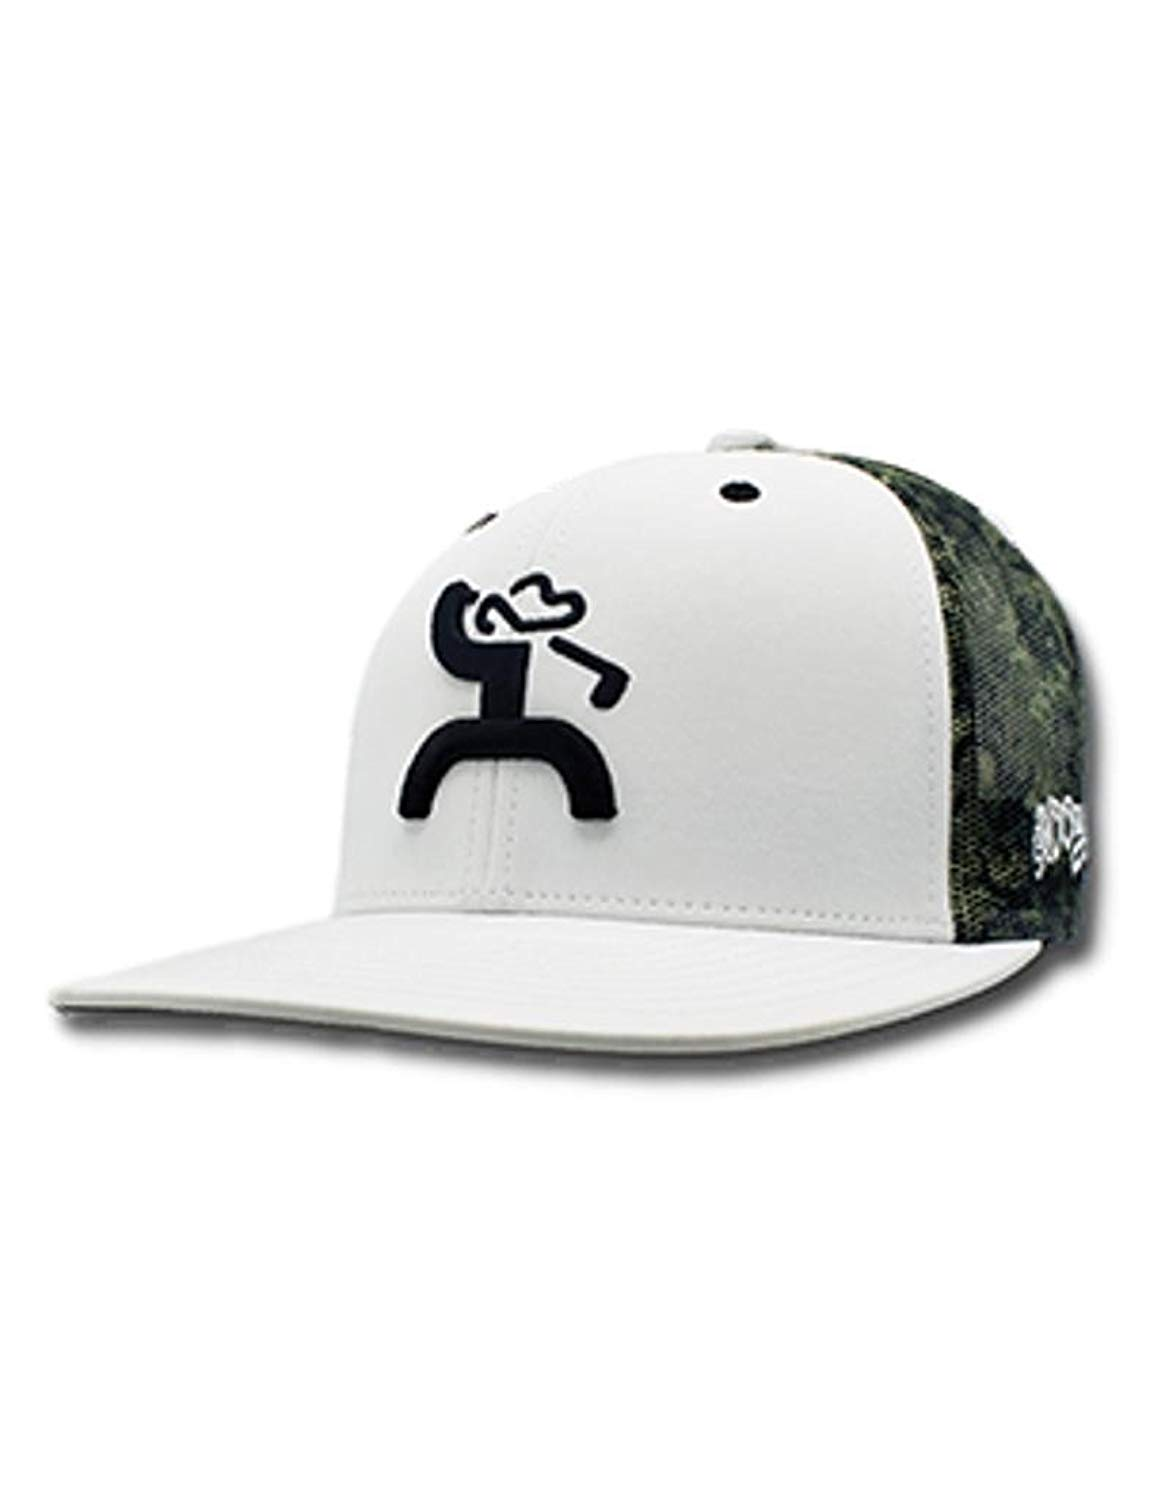 official photos 60959 565af ... sweden get quotations hooey brand o.b. white camo snapback hat 1800t  whca 2793c fa7b1